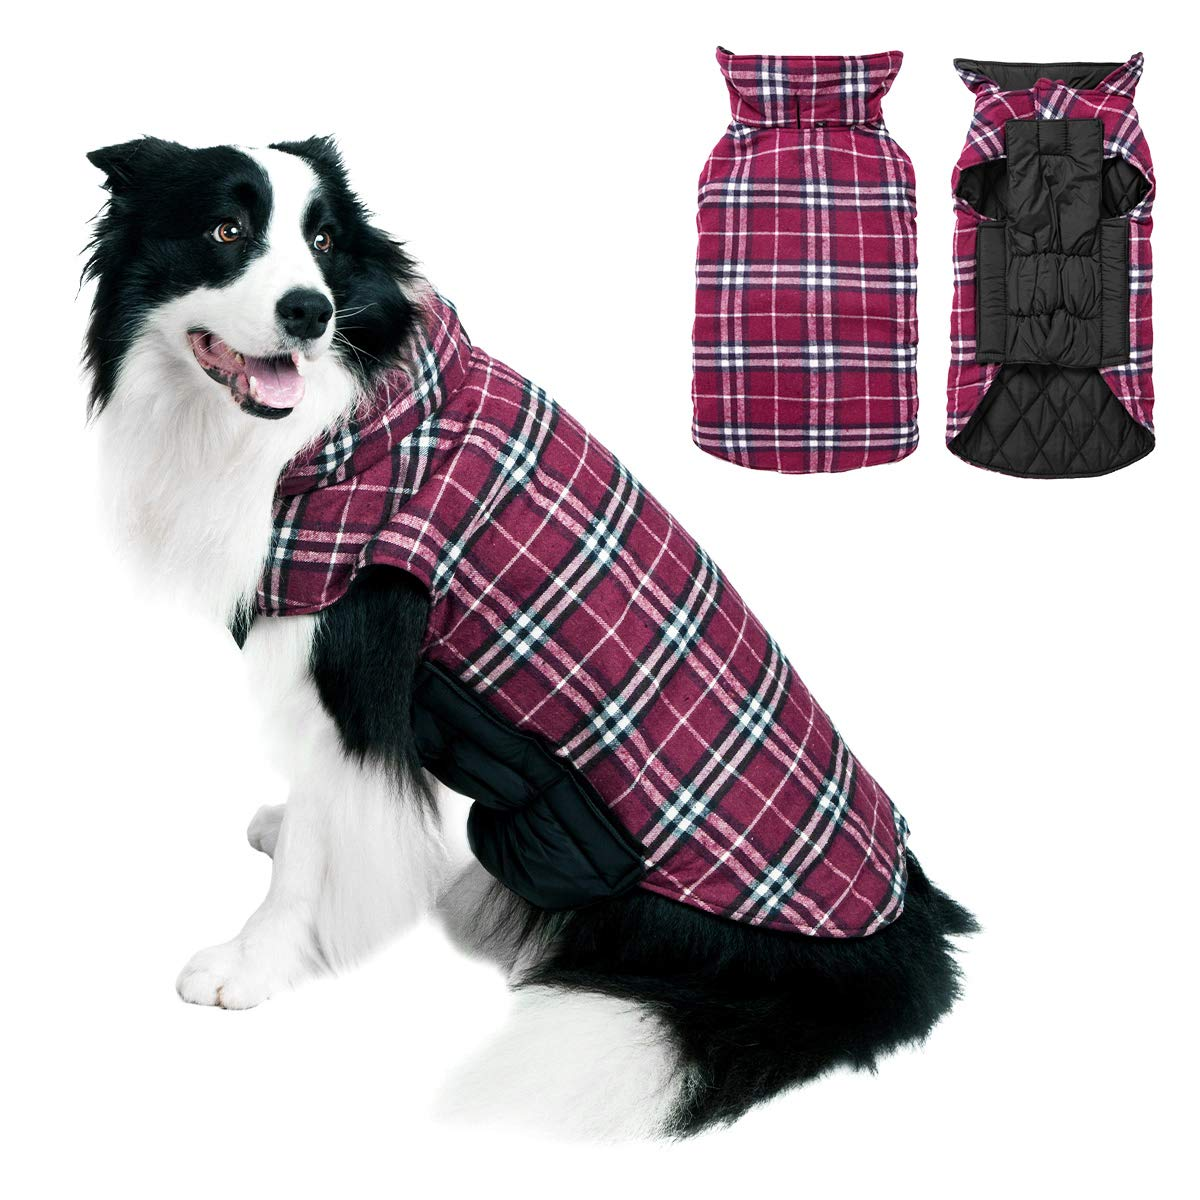 Red M(Back 14.17 inch;Chest 18.89-21.25 inch) Red M(Back 14.17 inch;Chest 18.89-21.25 inch) TPHC Dog Winter Jacket Pet, Windproof Snow Waterproof Sweater Reverible Coat Winter,Dog Clothes Small Medium Puppy Dogs, Red M